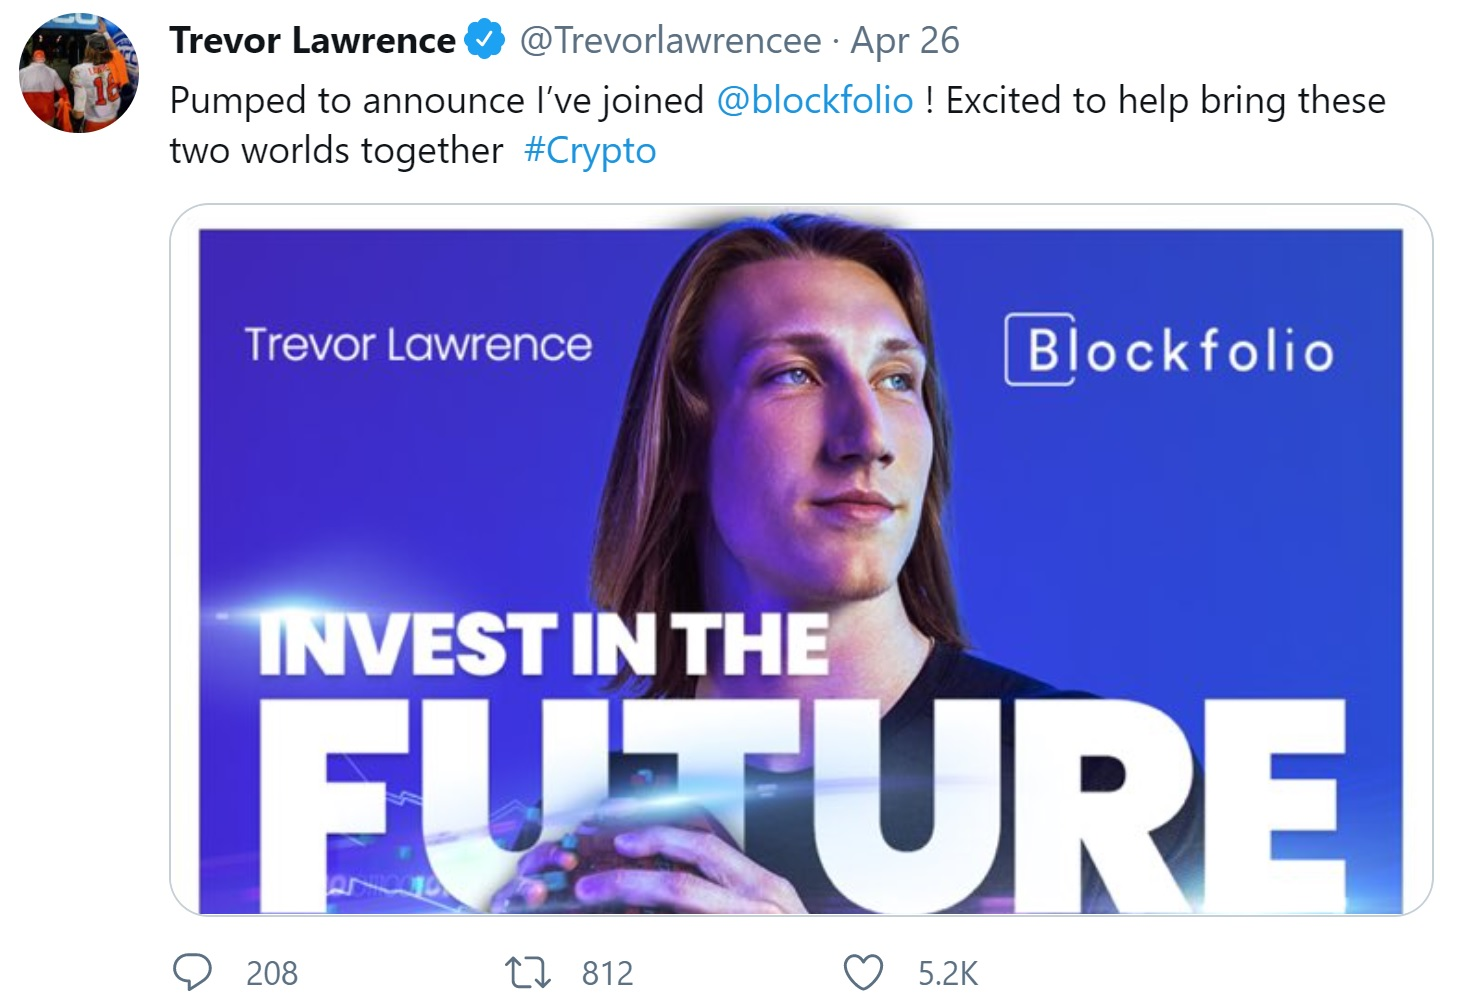 No. 1 NFL Draft Pick Trevor Lawrence Puts His Signing Bonus in Cryptocurrencies, Estimated Worth $24 Million